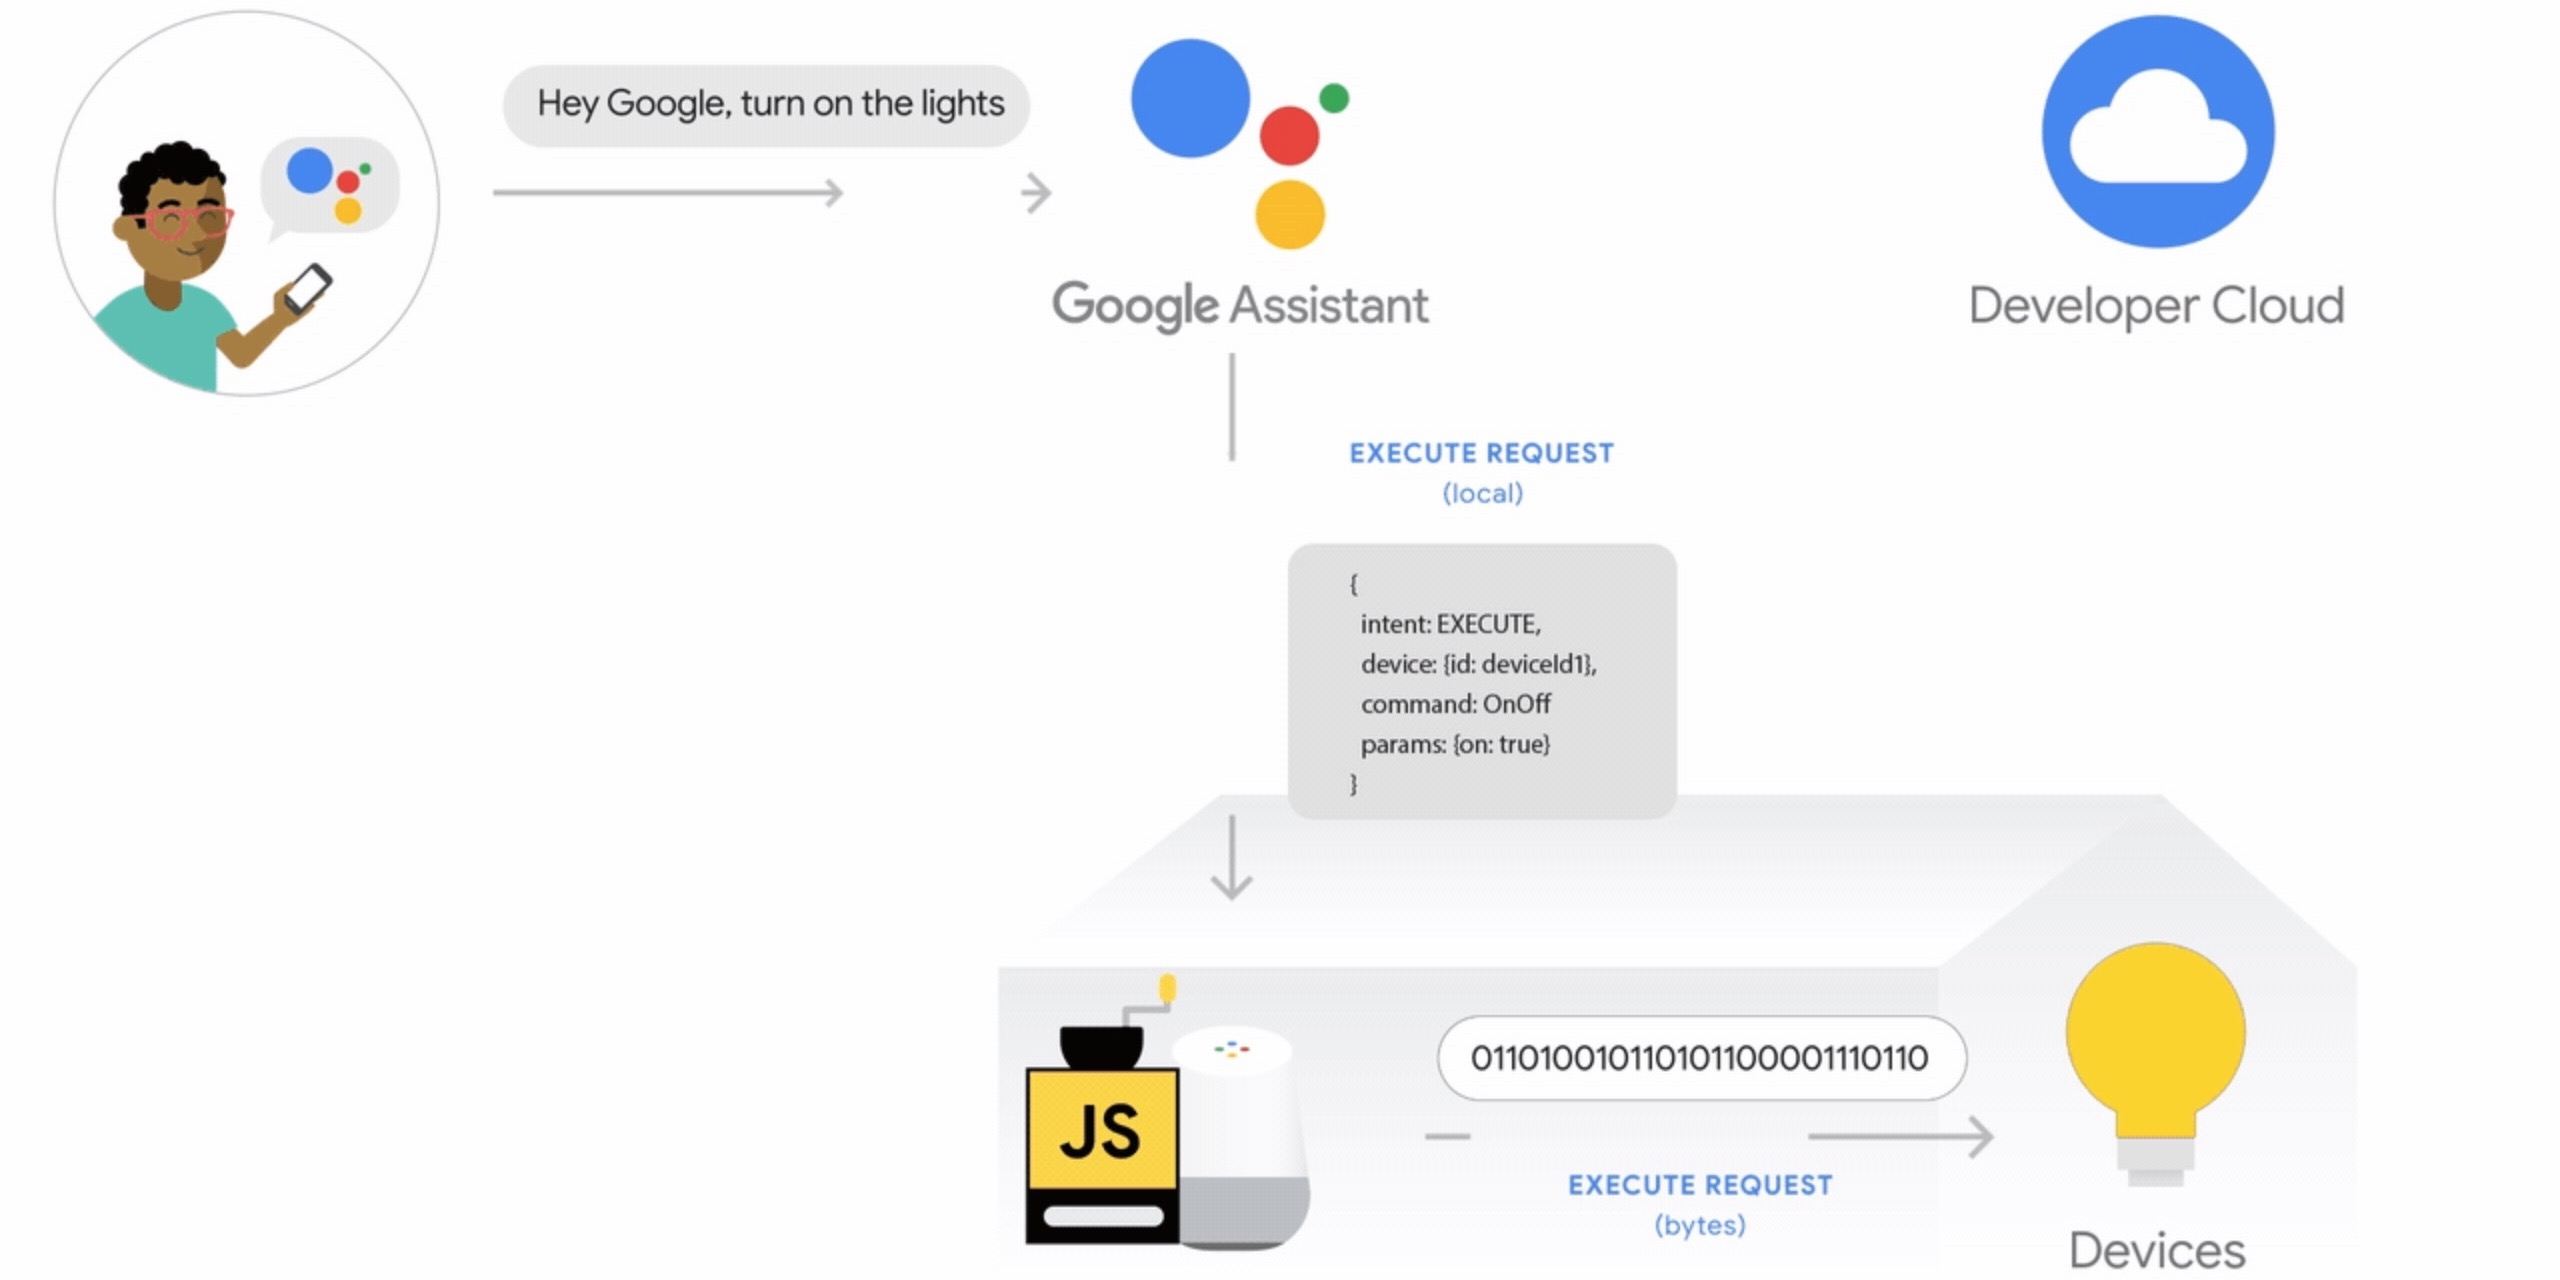 Google's new Local Home SDK hopes to make smart home control faster, more reliable